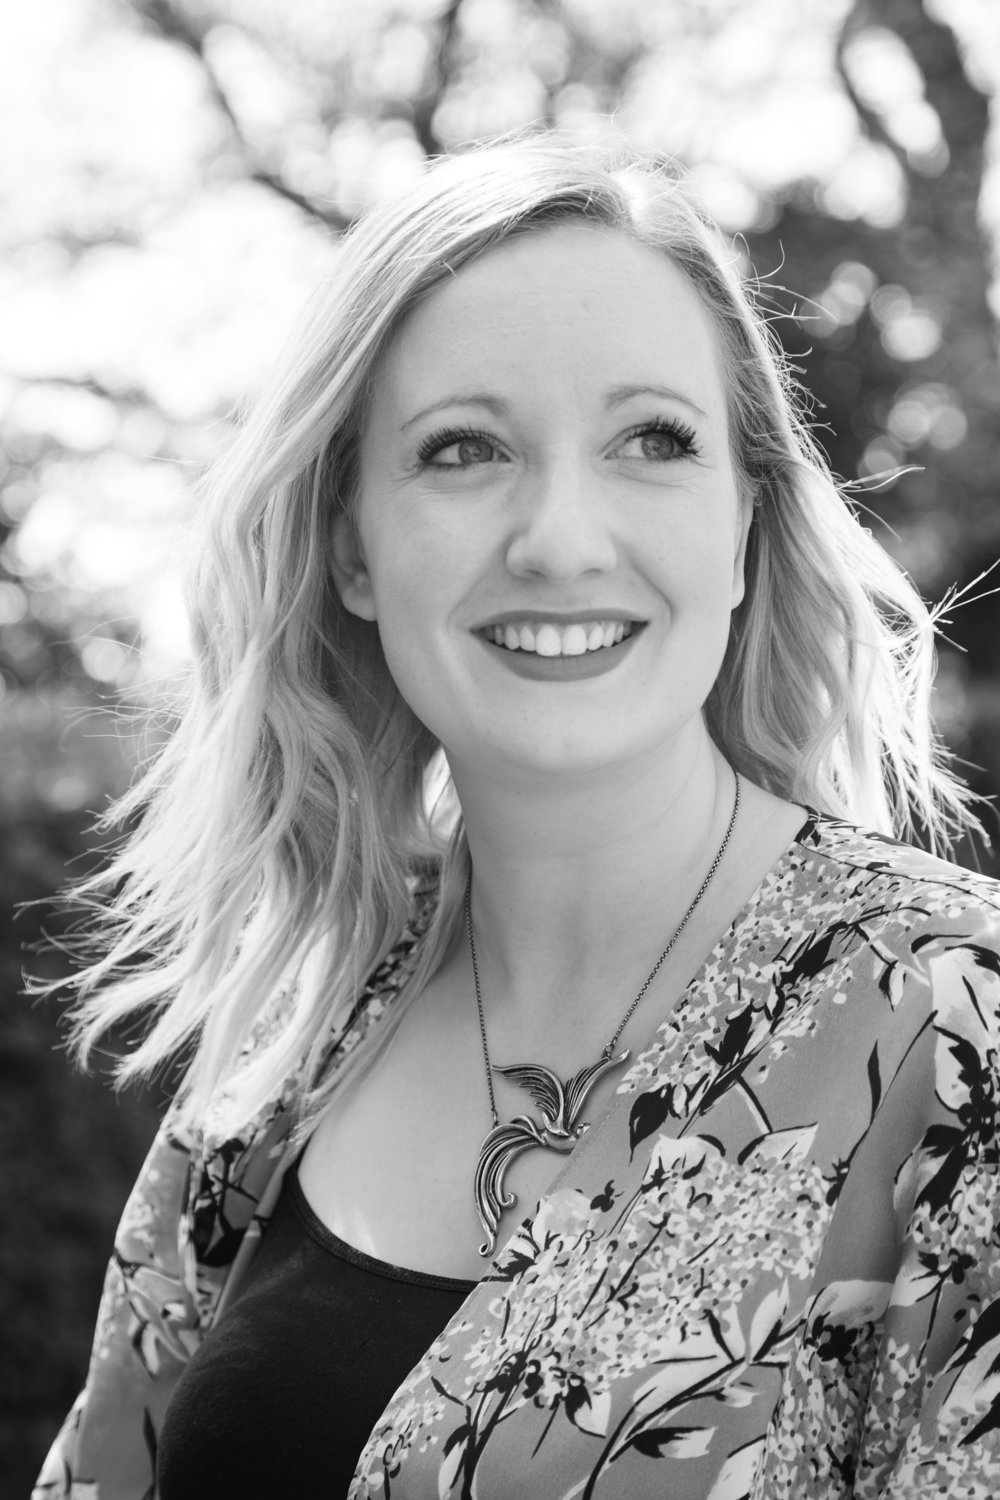 Emma Martin - Having graduated in 2009 with a Theatre & Performances Studies degree from the University of Warwick my passion for the arts took me to a role as Marketing Office for the Theatre Royal Bury St Edmunds in 2010, leaving in 2015 as Head of Department. From 2015 - 2016 I worked for Tara Arts and managed the marketing, sales and branding strategy for the reopening of the new Tara Theatre.  Since November 2016, I have been working as a freelance Arts Marketing consultant and manager on strategy development, tour marketing, branding and digital strategy and implementation for producing companies. Currently working as Communications Manager for the Original Theatre Company with projects for Rifco Theatre Company, Cahoots Theatre Company, The Production Exchange, Park Theatre, Southwark Playhouse and The Other Palace. Emma also runs the marketing module for the MA in Creative Producing at Mountview Academy of Theatre Arts.Over the last 8 years Emma has worked on 10 national tours including Mansfield Park (Theatre Royal Bury St Edmunds); Three Men In A Boat, Invincible, Monogamy, Caroline's Kitchen, Napoli, Brooklyn  (Original Theatre Company, 2015, 2016 & Brits Off Broadway); The Diary of a Hounslow Girl, Hamlet (Black Theatre Live); Emma (The Production Exchange) as well as London projects including Paradise of the Assassins (Tara Arts); The Roundabout, Deny, Deny, Deny, Twitstorm, Twilight Song (Cahoots Theatre Company/Park Theatre); Hamlet (Gyles Brandreth), Secondary Victim, There or Here, Schism, Beruit, Peter Pan (Park Theatre), Ghost About The House (Kings Head Theatre) Bananaman (social media), For King and Country, The Night Before Christmas, The Rubenstien Kiss (Southwark Playhouse), Fanatical (Playground Theatre) and Murder For Two (The Other Palace).